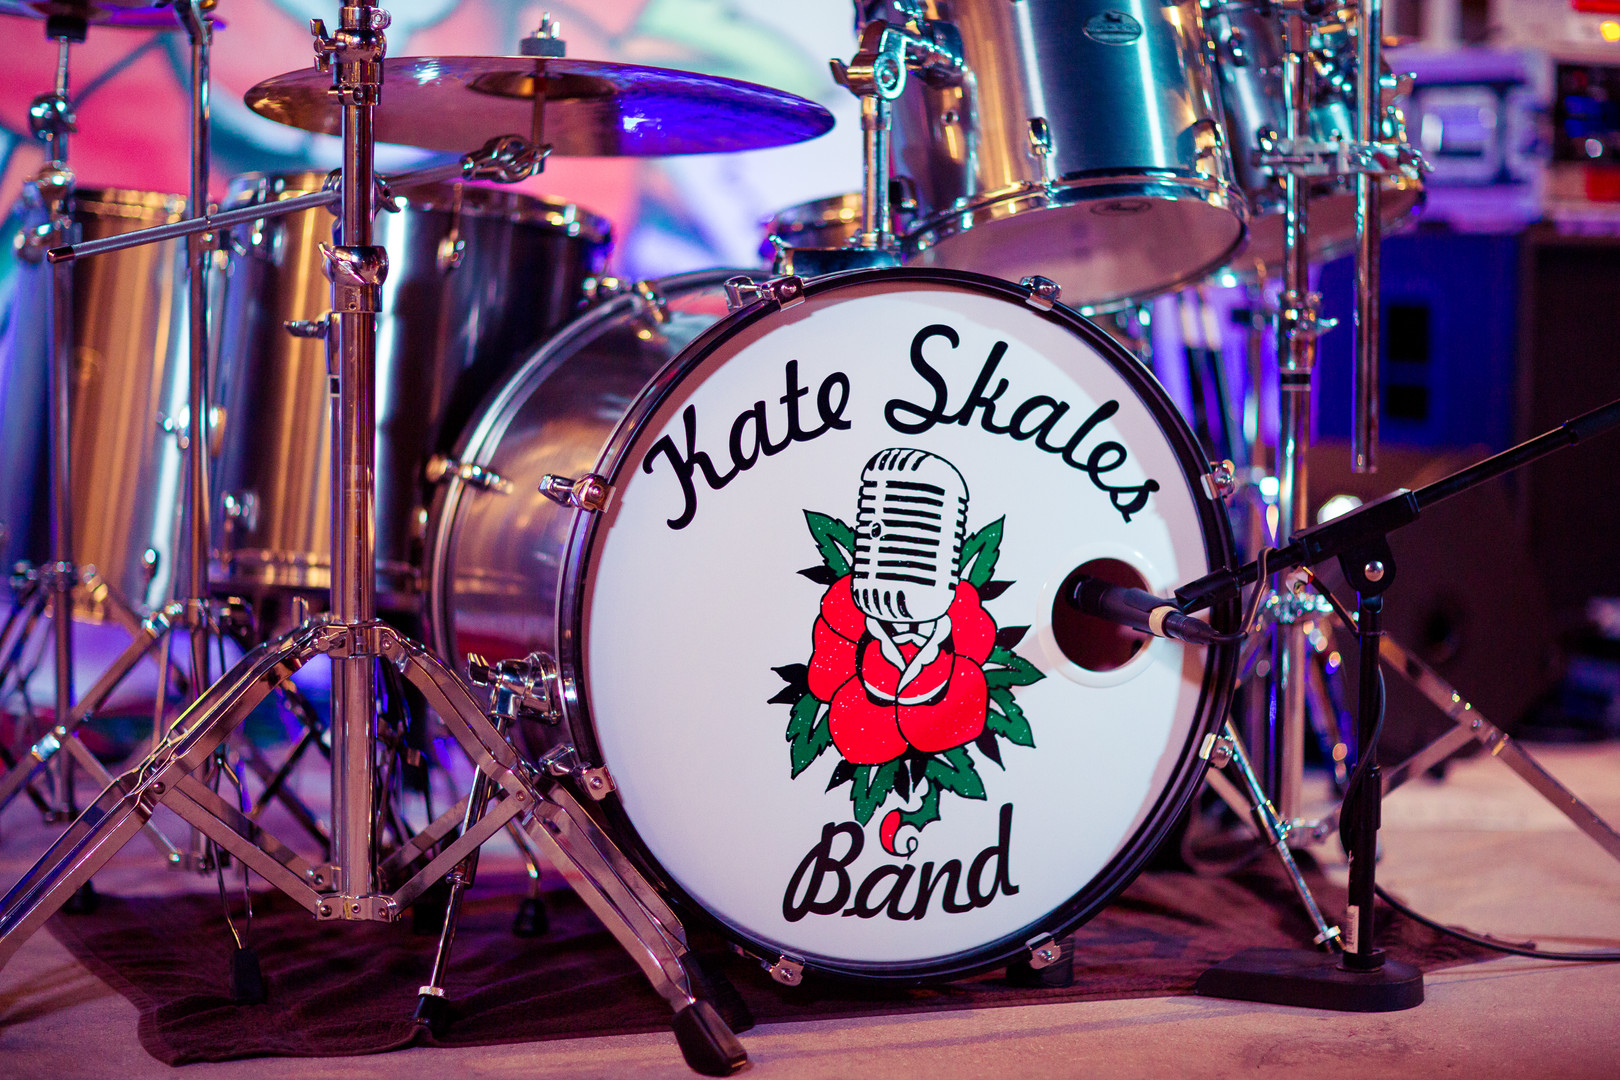 Kate Skales Band